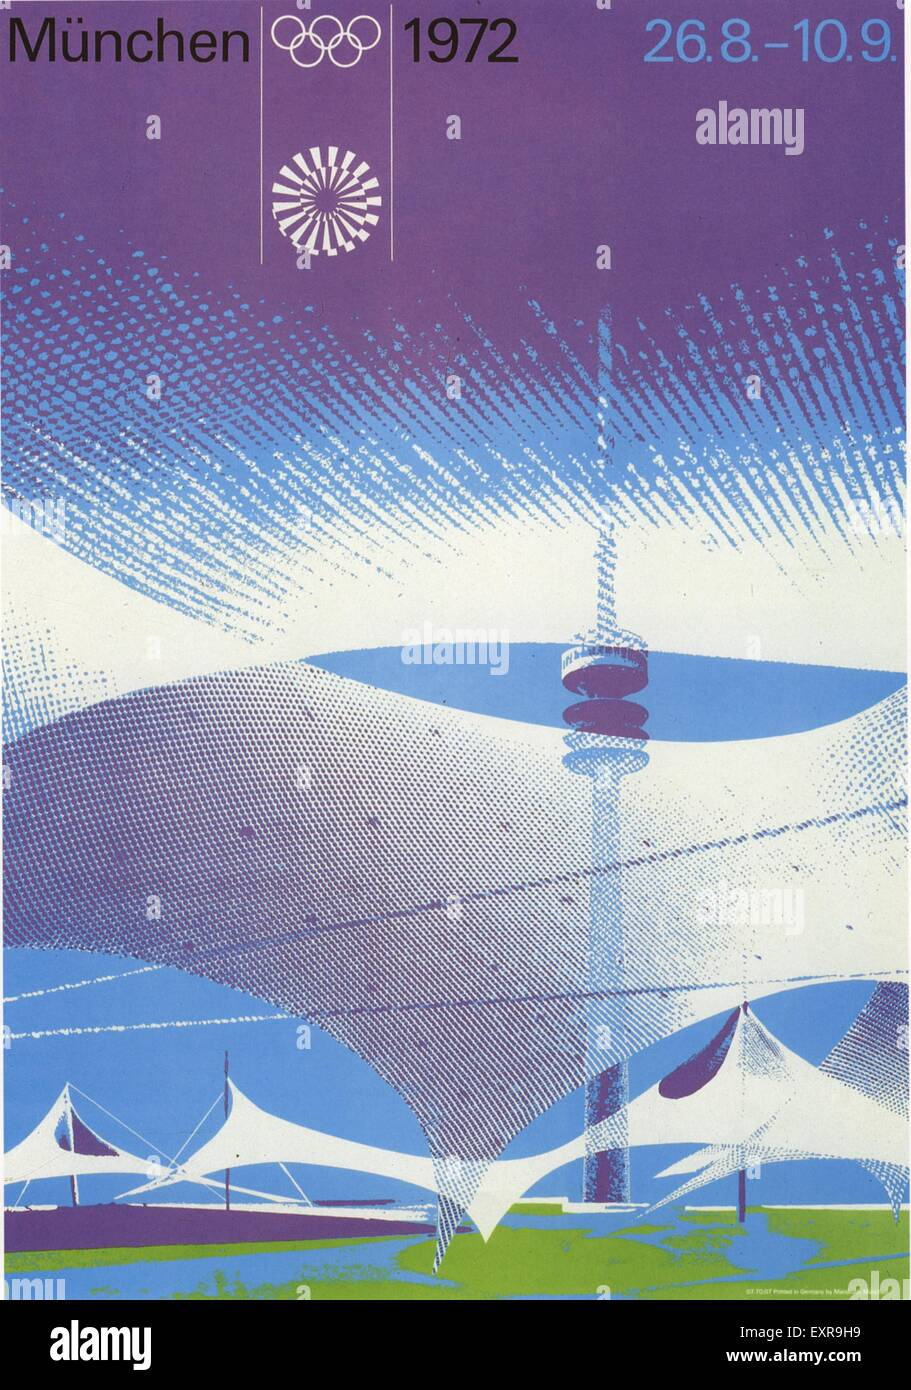 1970s Germany Olympic Games Poster - Stock Image